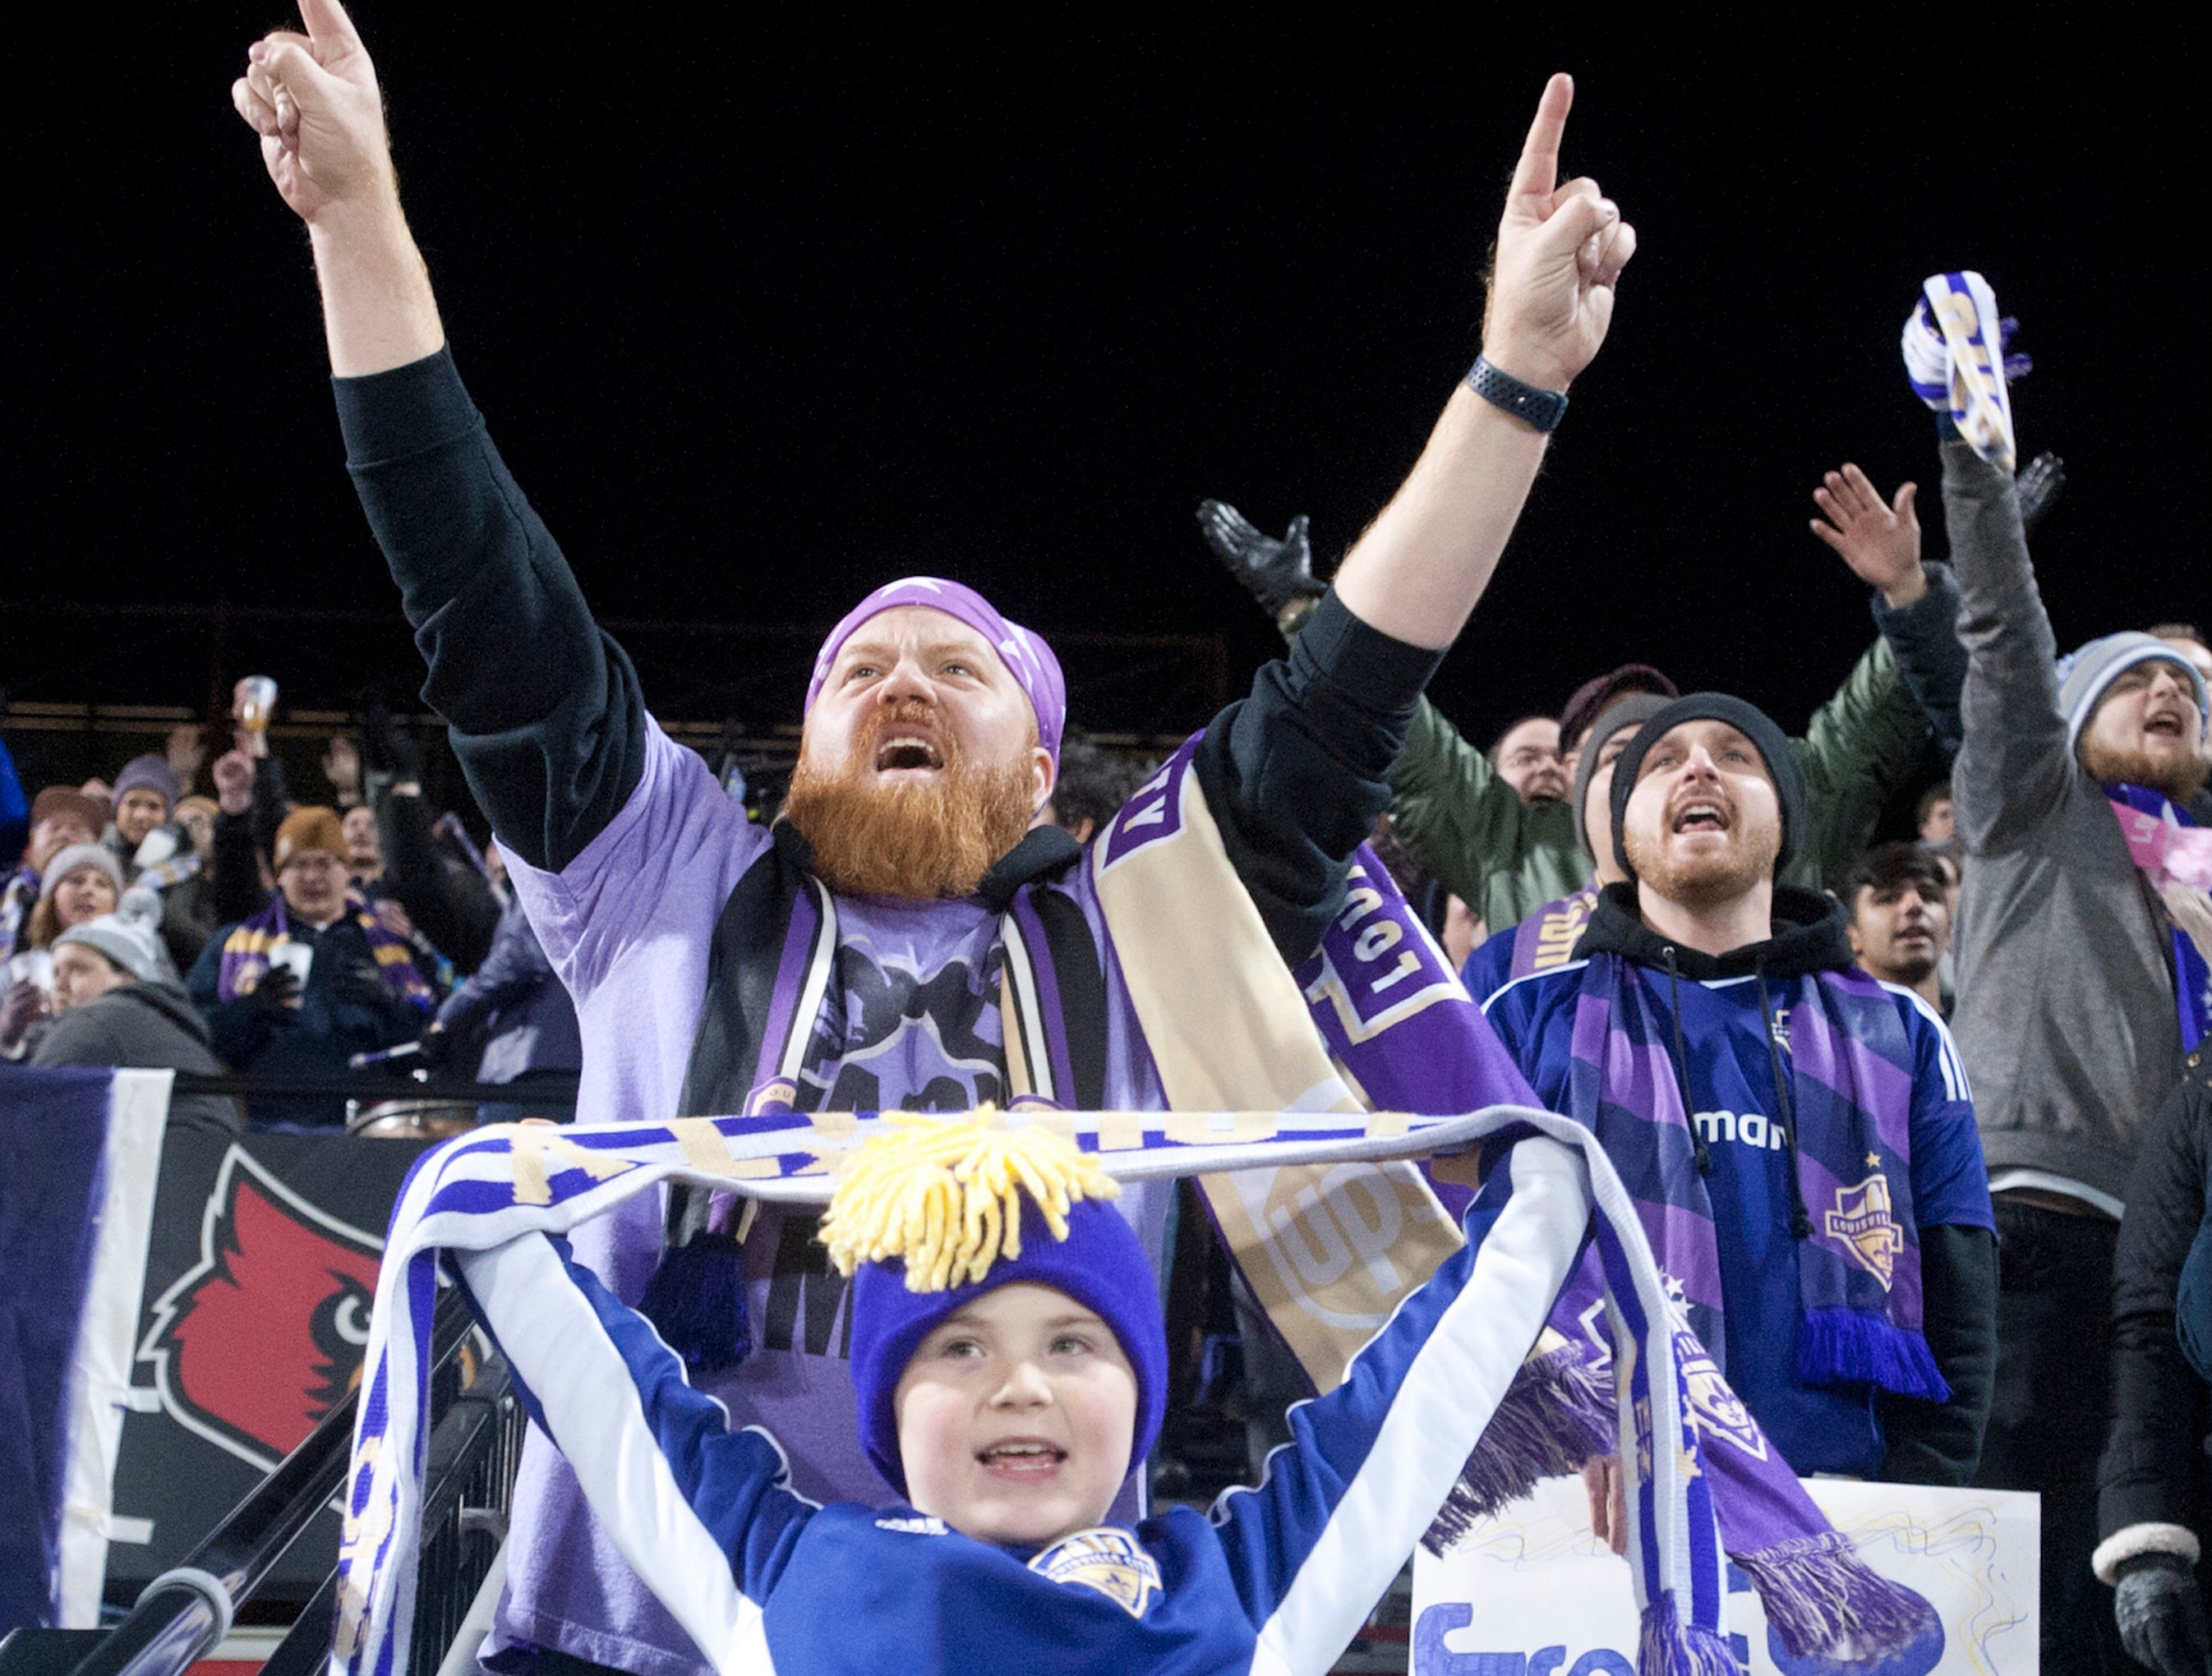 Chris Foreman and his son, Logan, age 7, root for Louisville City during the game.November 08, 2018